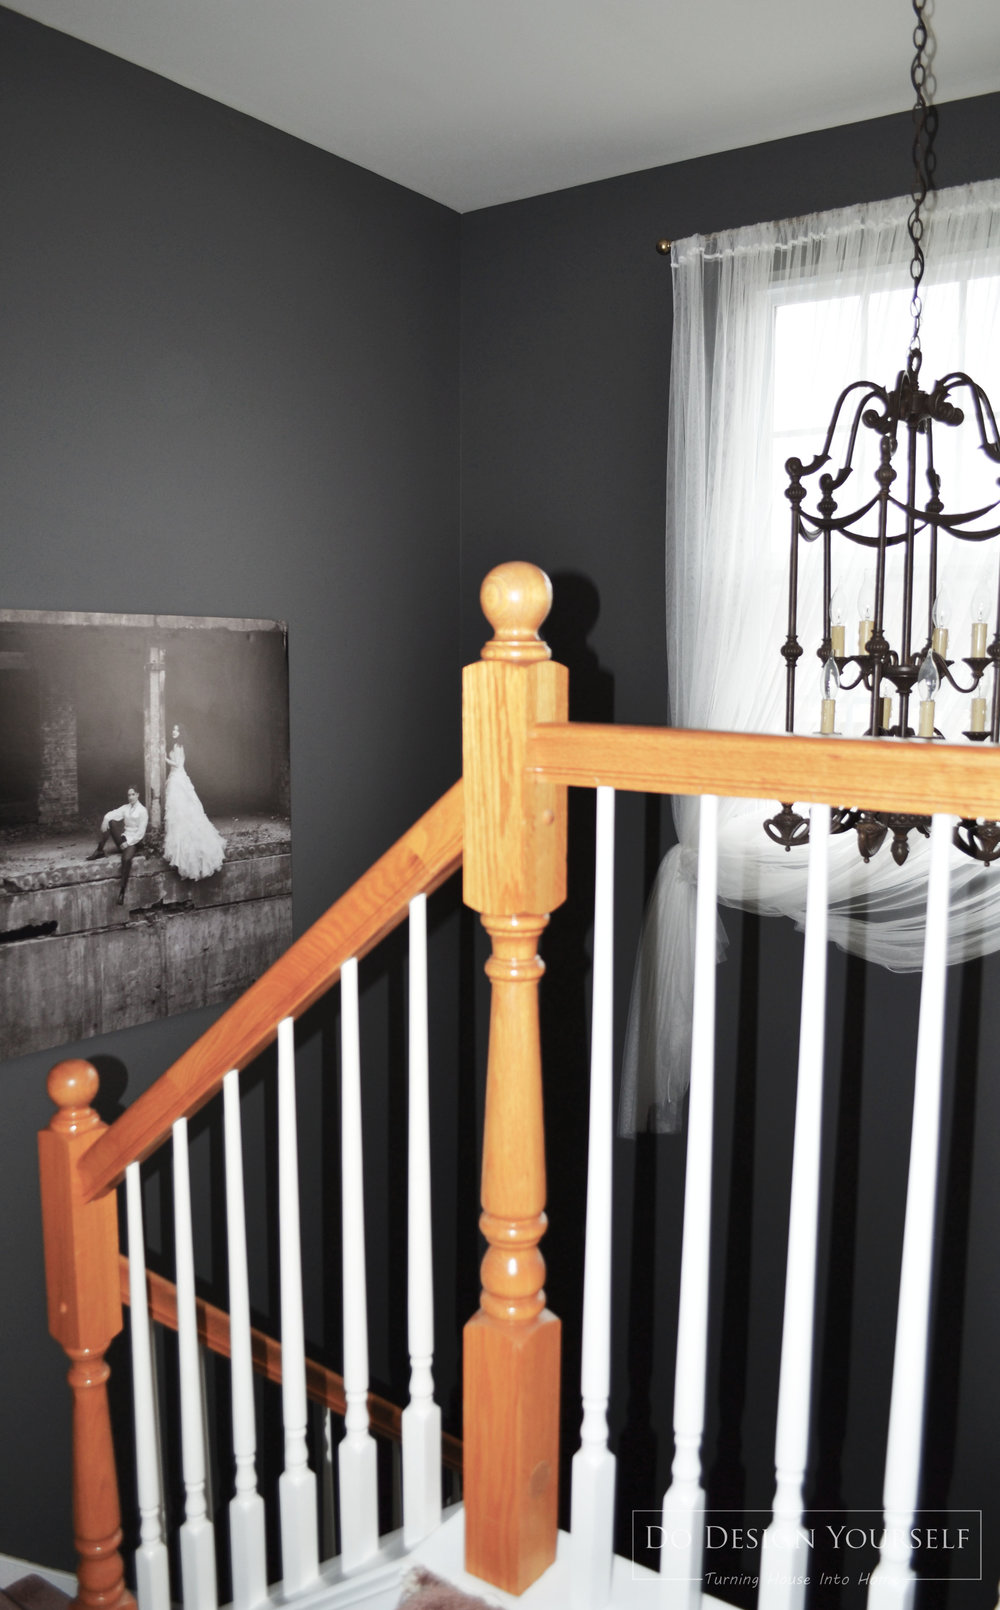 Staircase decorated with over-sized photo art and a shabby chandelier